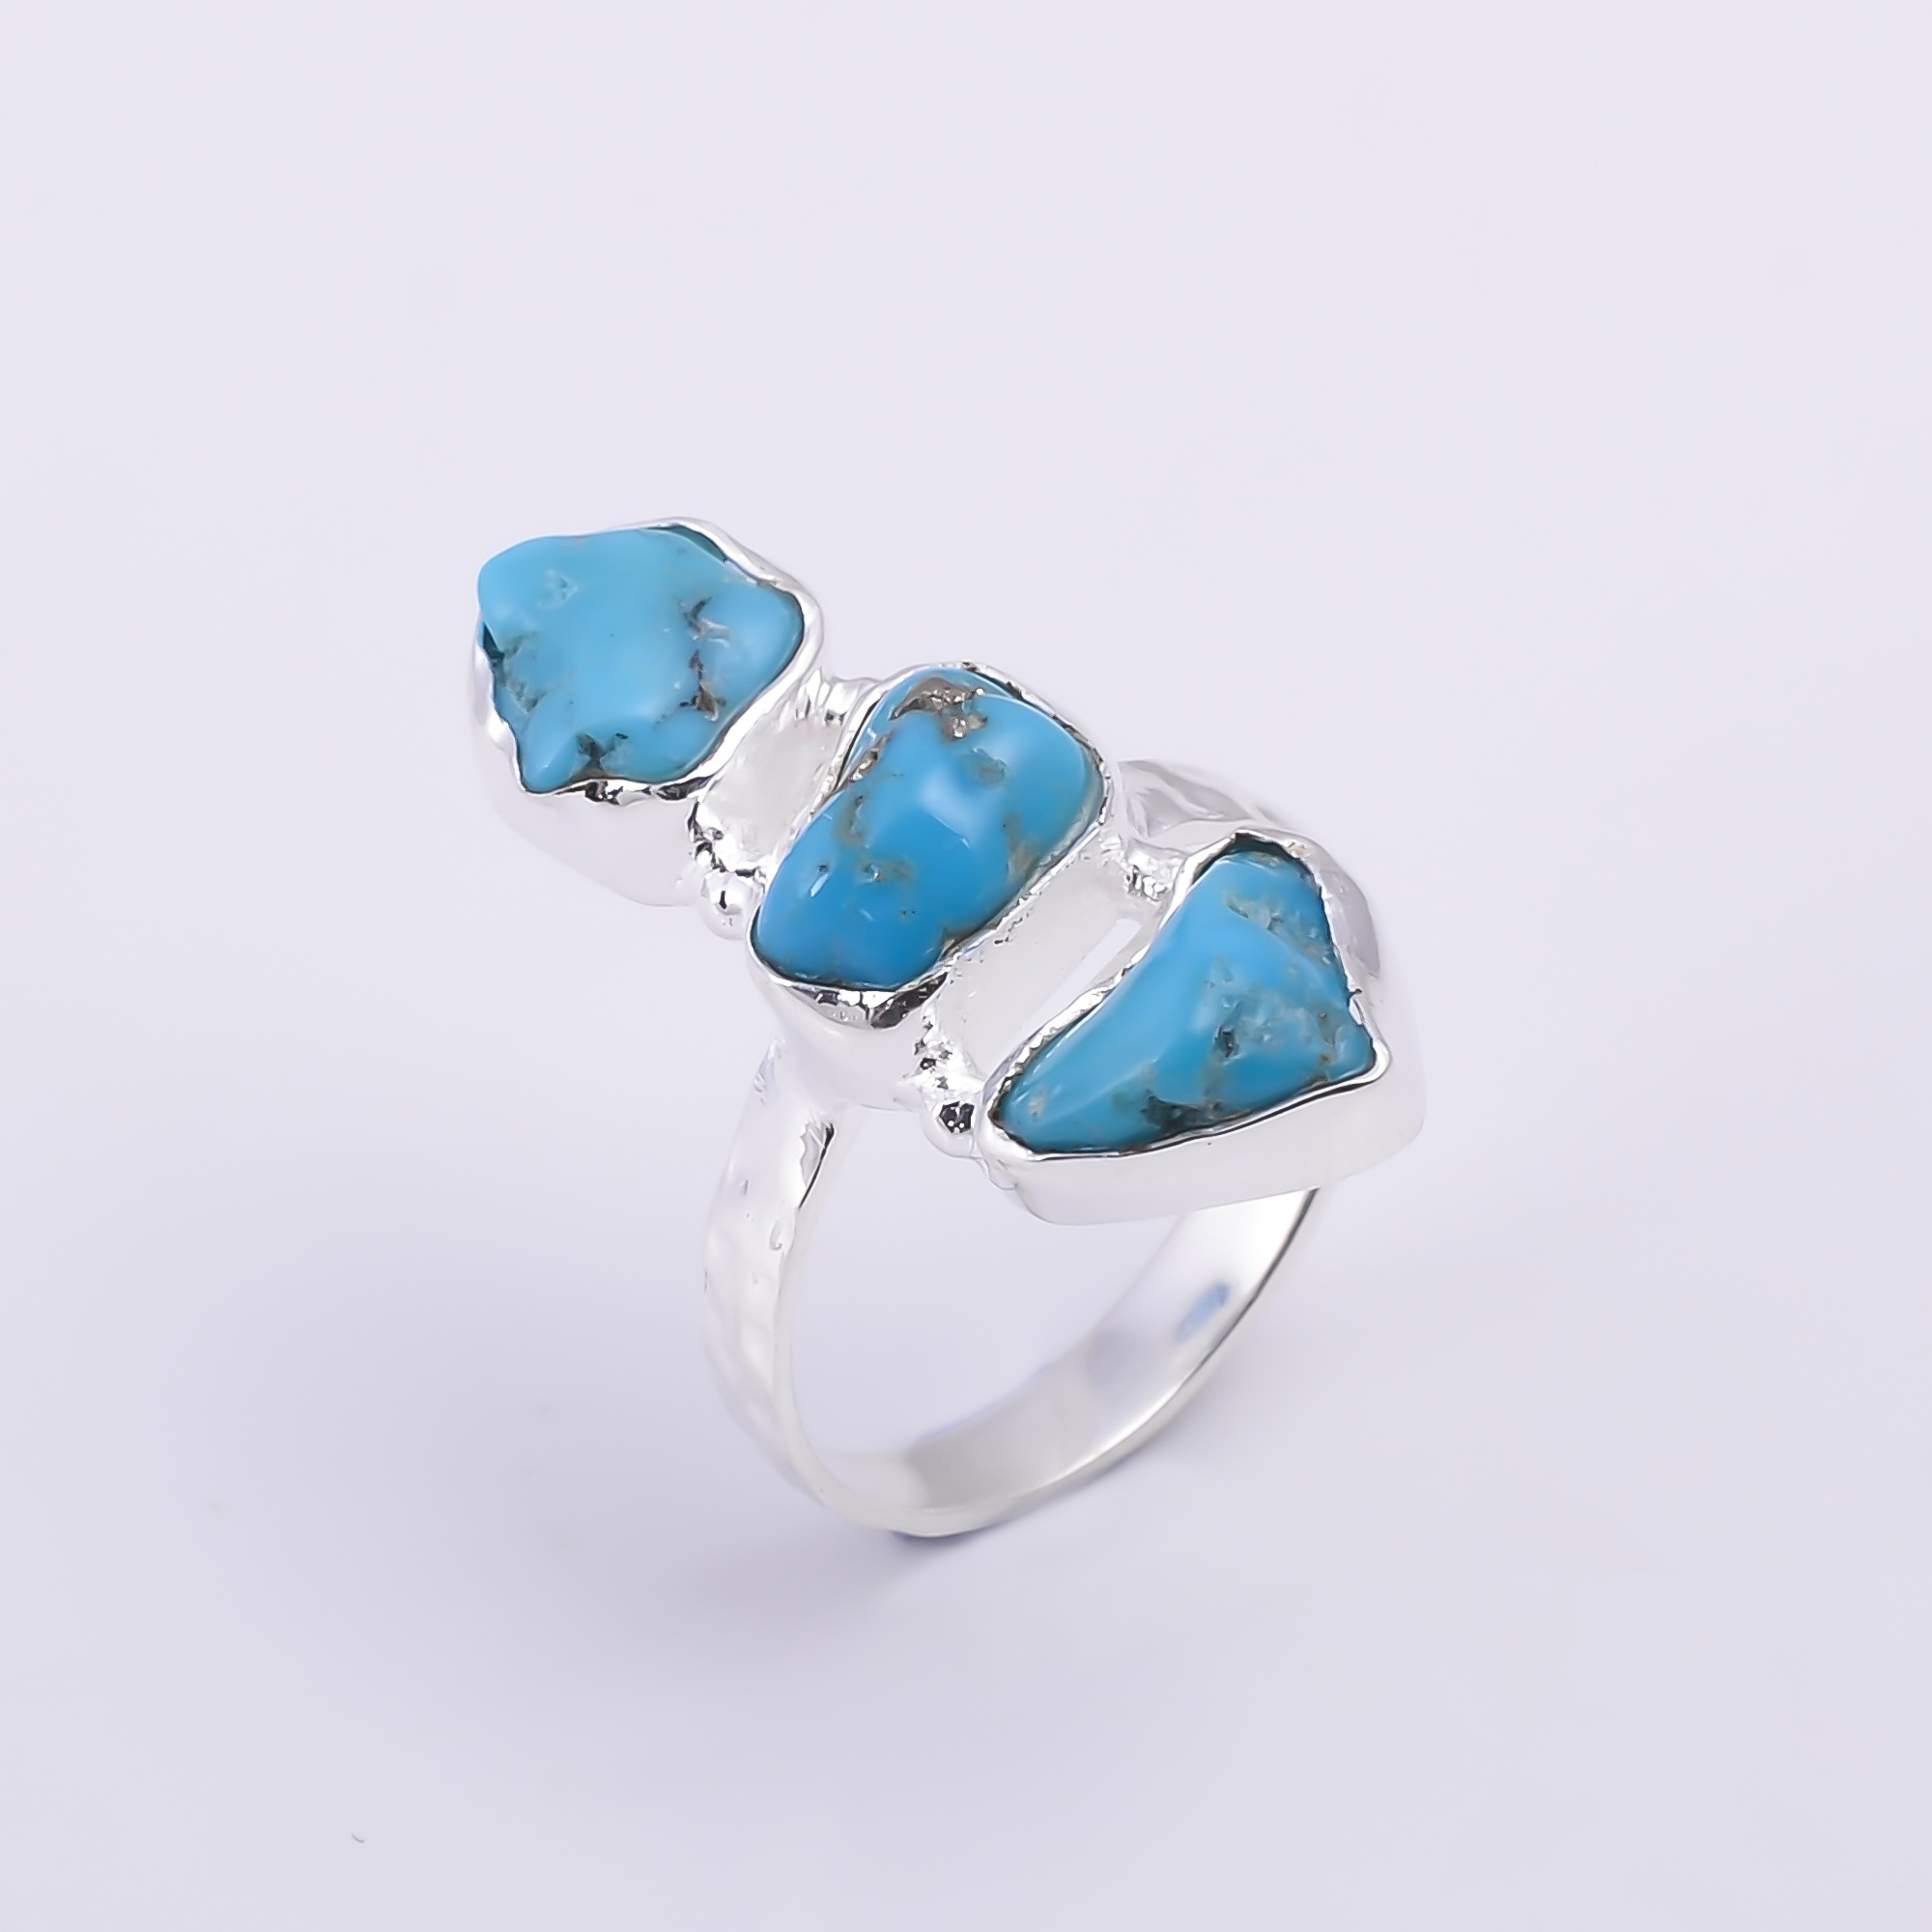 Turquoise Raw Gemstone 925 Sterling Silver Hammered Ring Size US 5.5